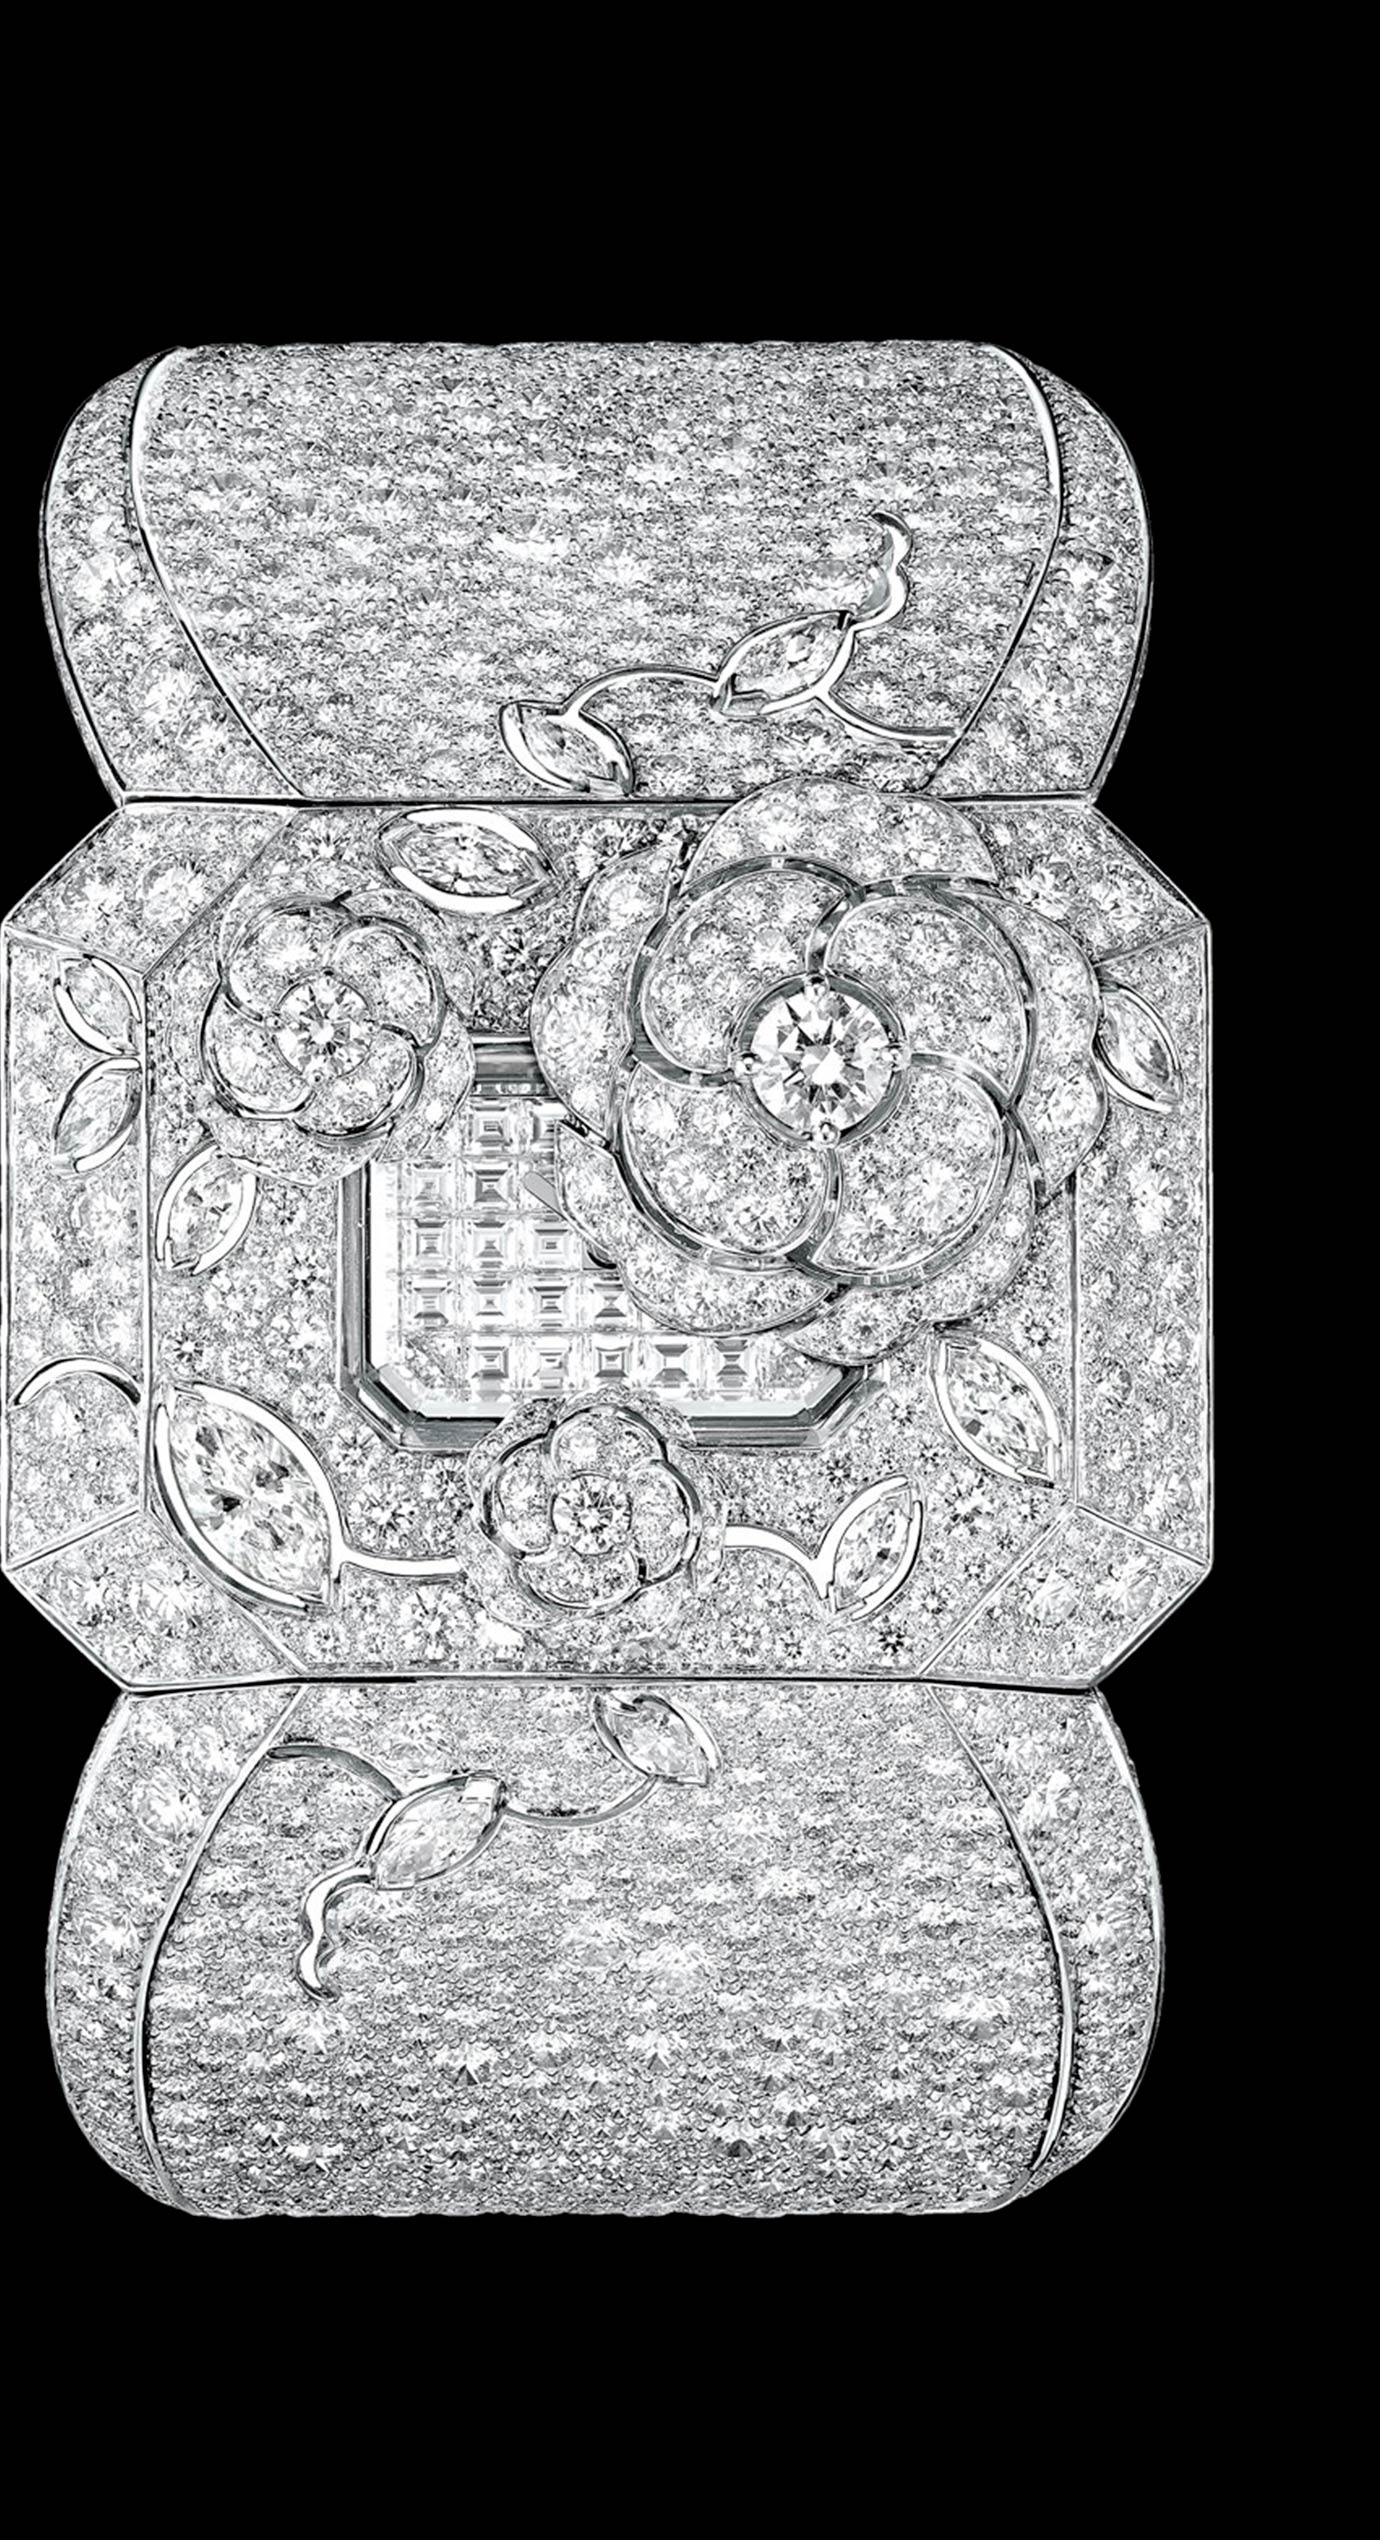 'Médaillon' watch. The backside of this medallion composed of engraved rock crystal, pearls and diamonds (including one 5.32-carat Fancy Light Yellow pear-cut diamond) conceals a diamond-paved watch dial. The medallion hangs elegantly from an 18K white gold sautoir set with 587 diamonds. - Back